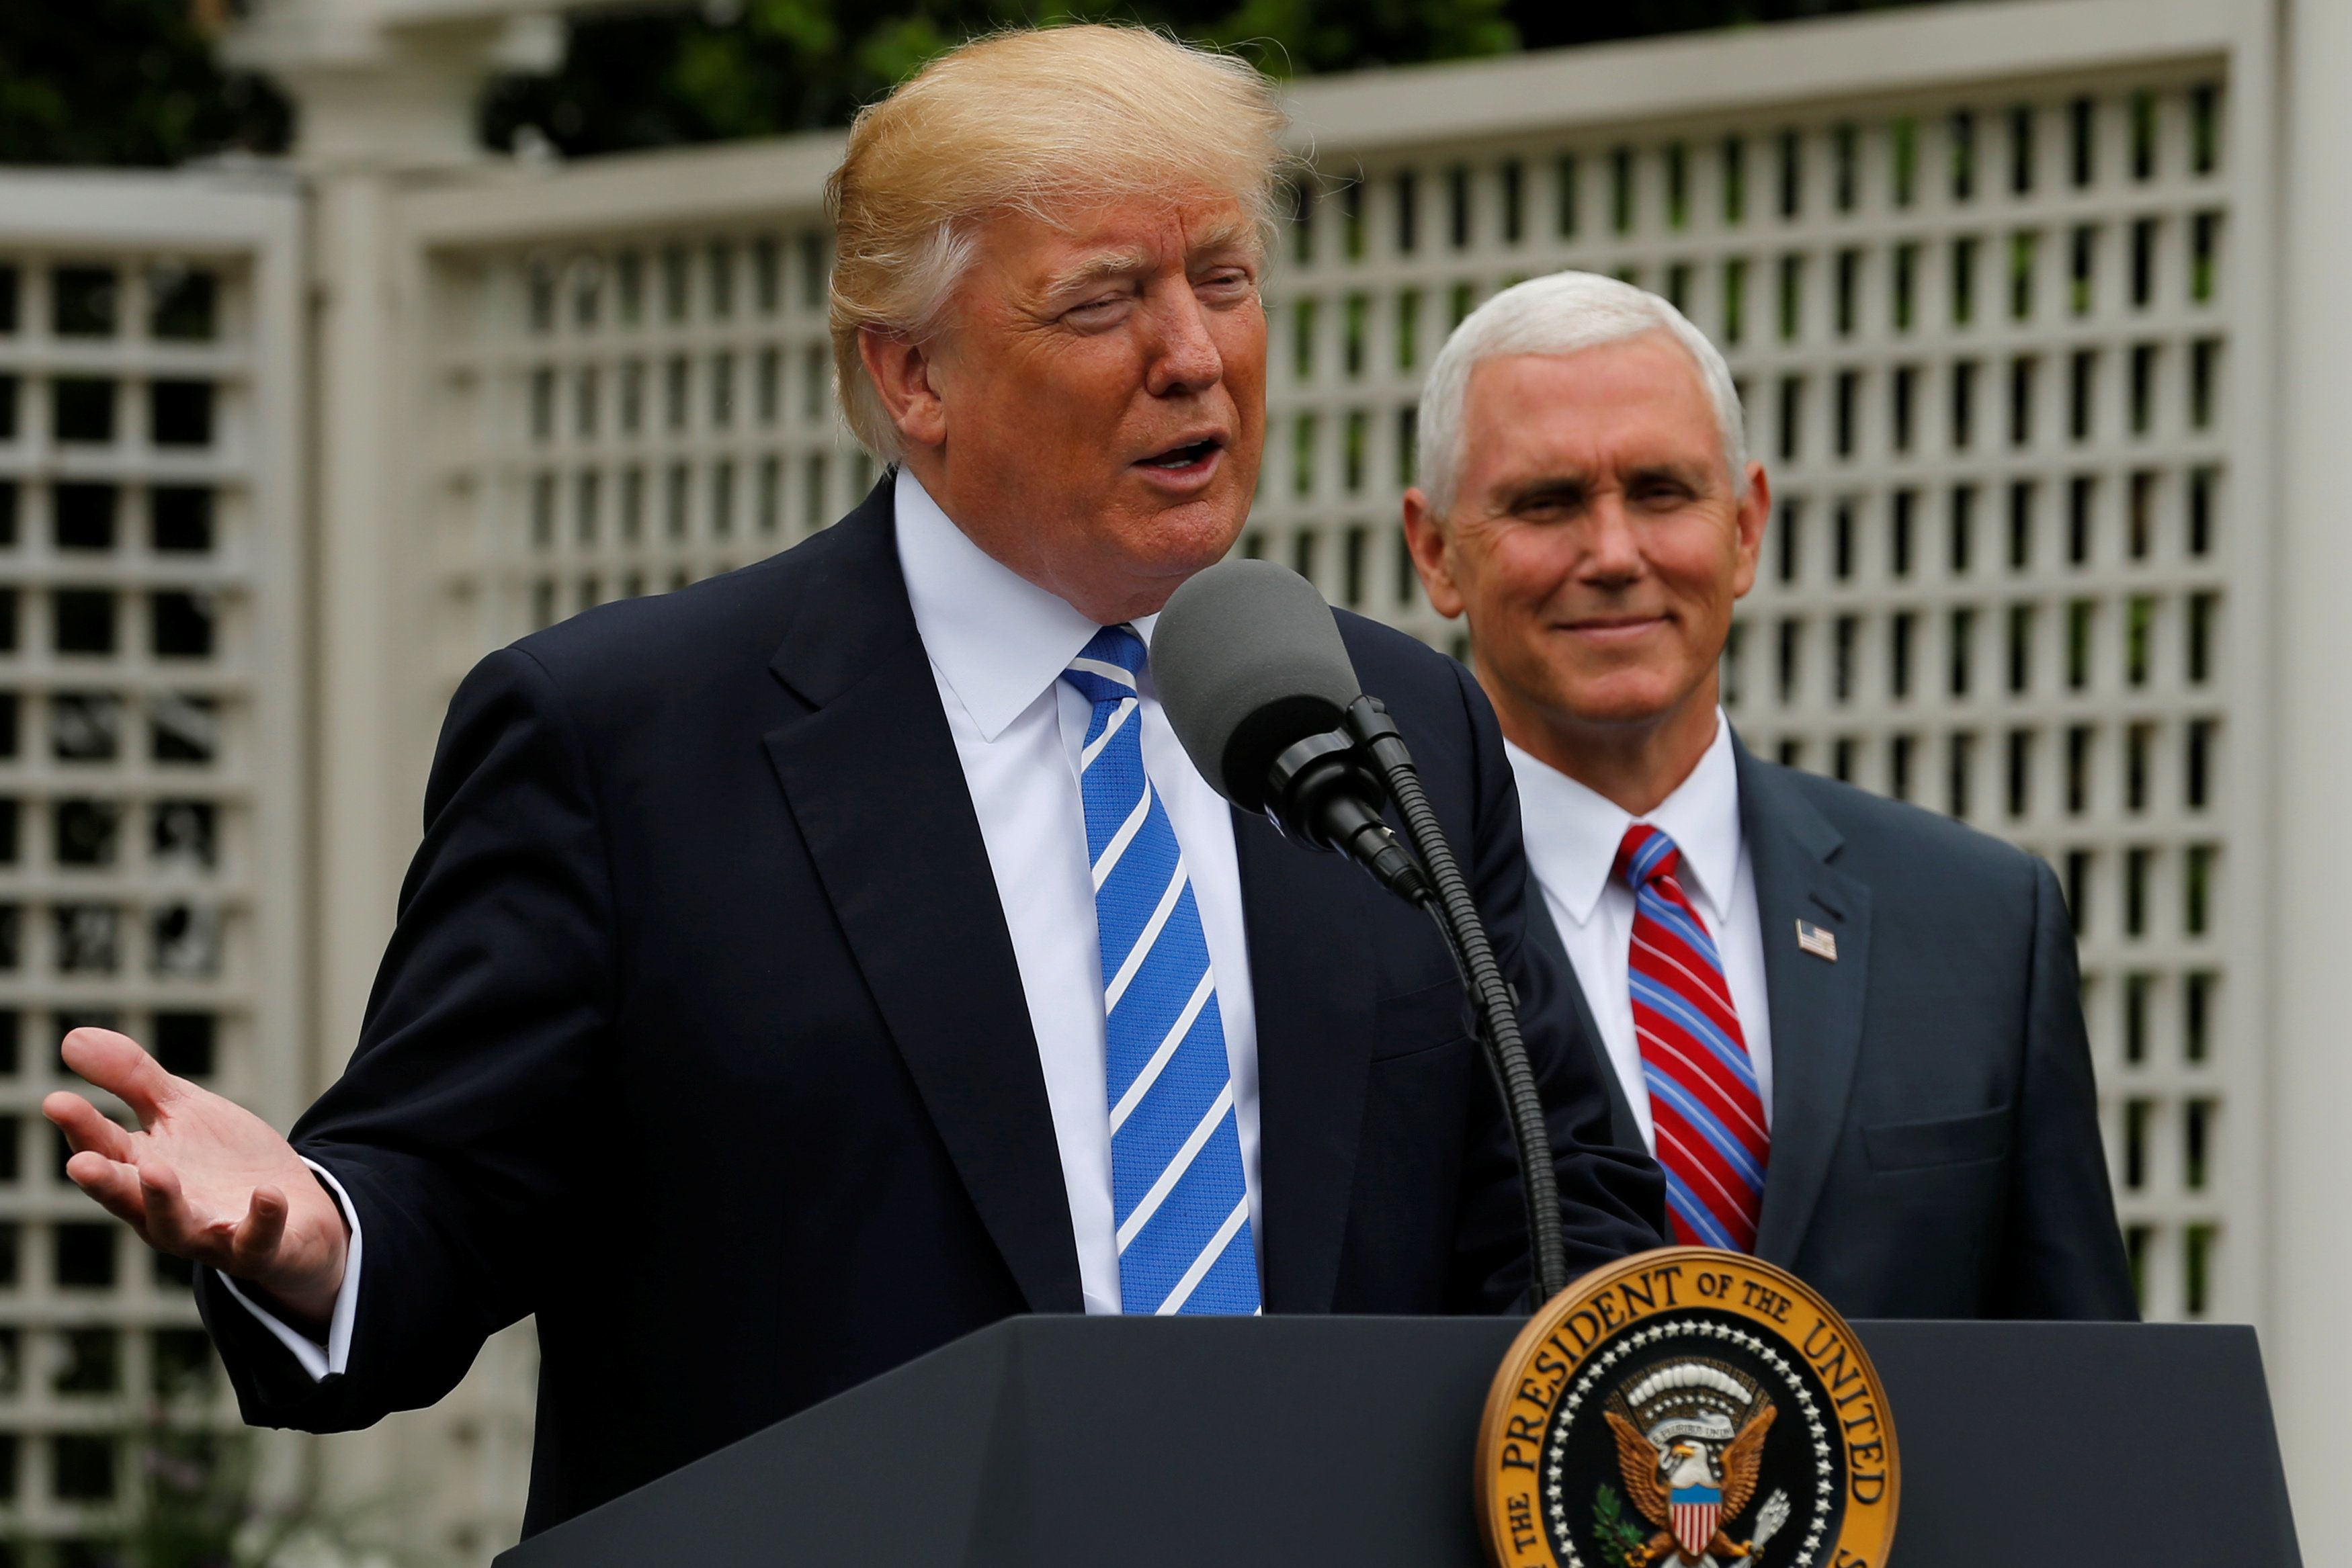 U.S. President Donald Trump (L), flanked by Vice President Mike Pence (R), delivers remarks to members of the Independent Community Bankers Association in the Kennedy Garden at the White House in Washington, U.S., May 1, 2017.  REUTERS/Jonathan Ernst